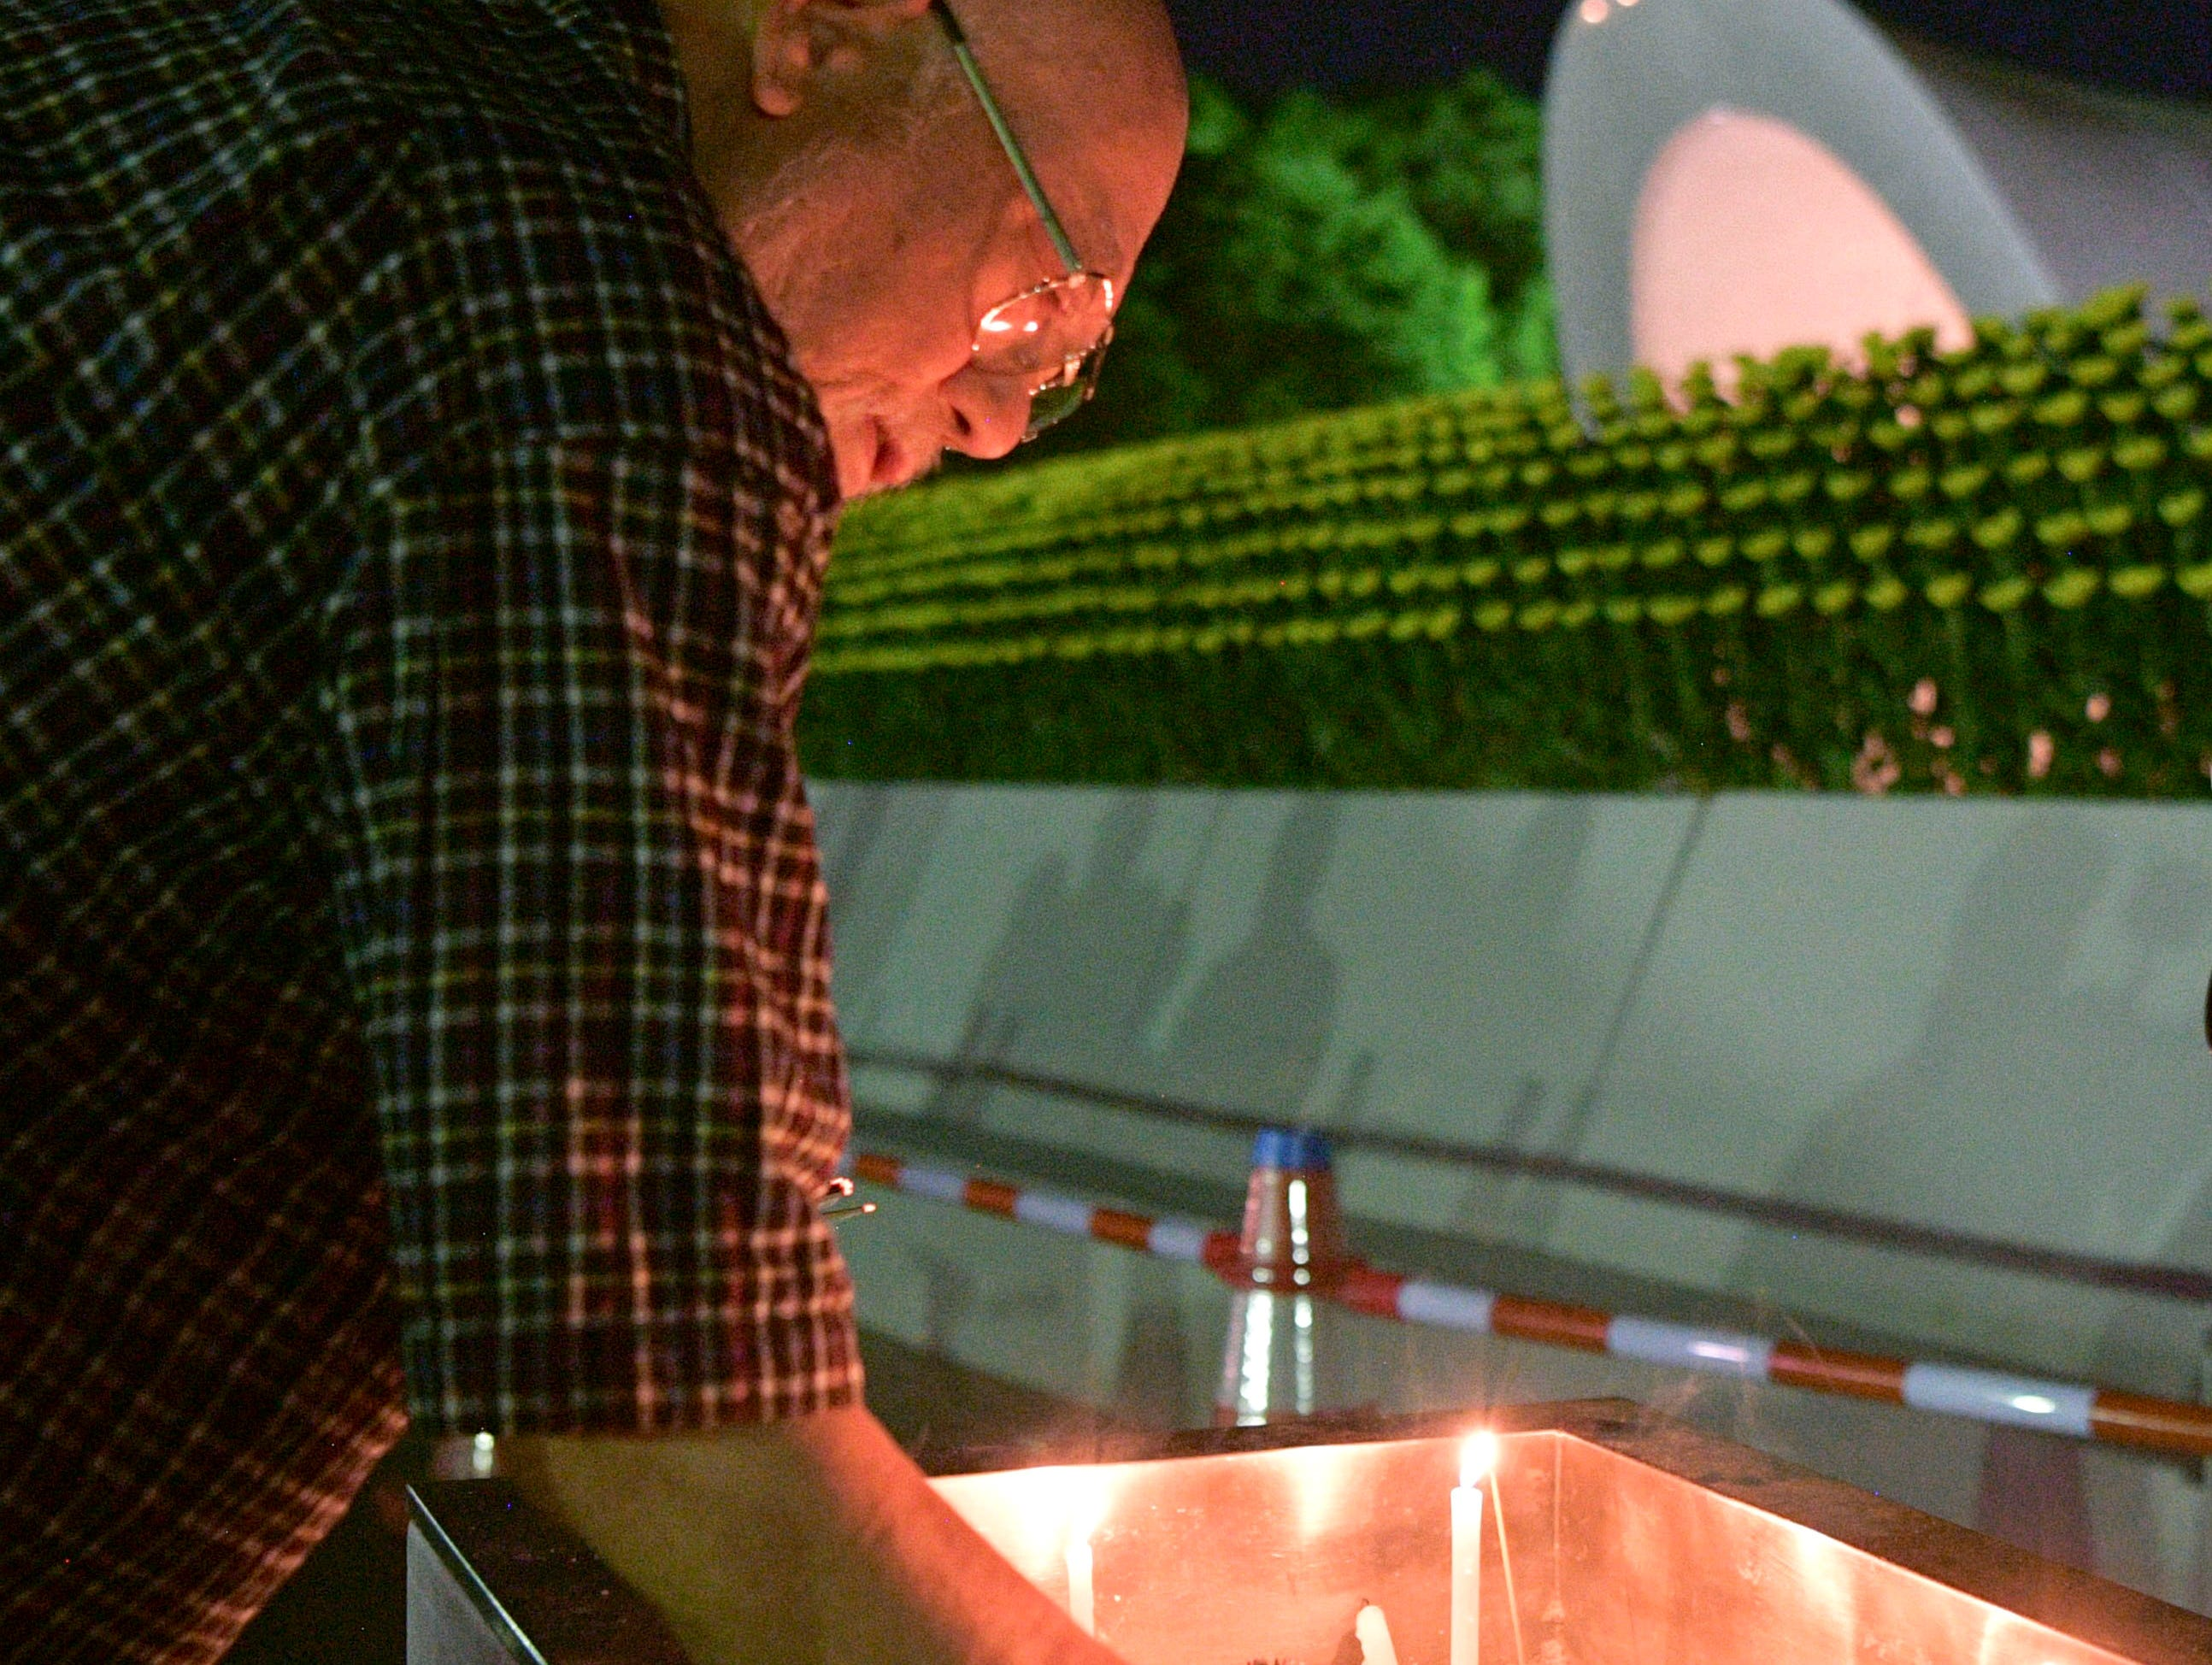 A man burns a stick of incense at the cenotaph dedicated to the victims of atomic bombing at Hiroshima Peace Memorial Park in Hiroshima, western Japan, early Monday, Aug. 6, 2018, marking the 73rd anniversary of the bombing.